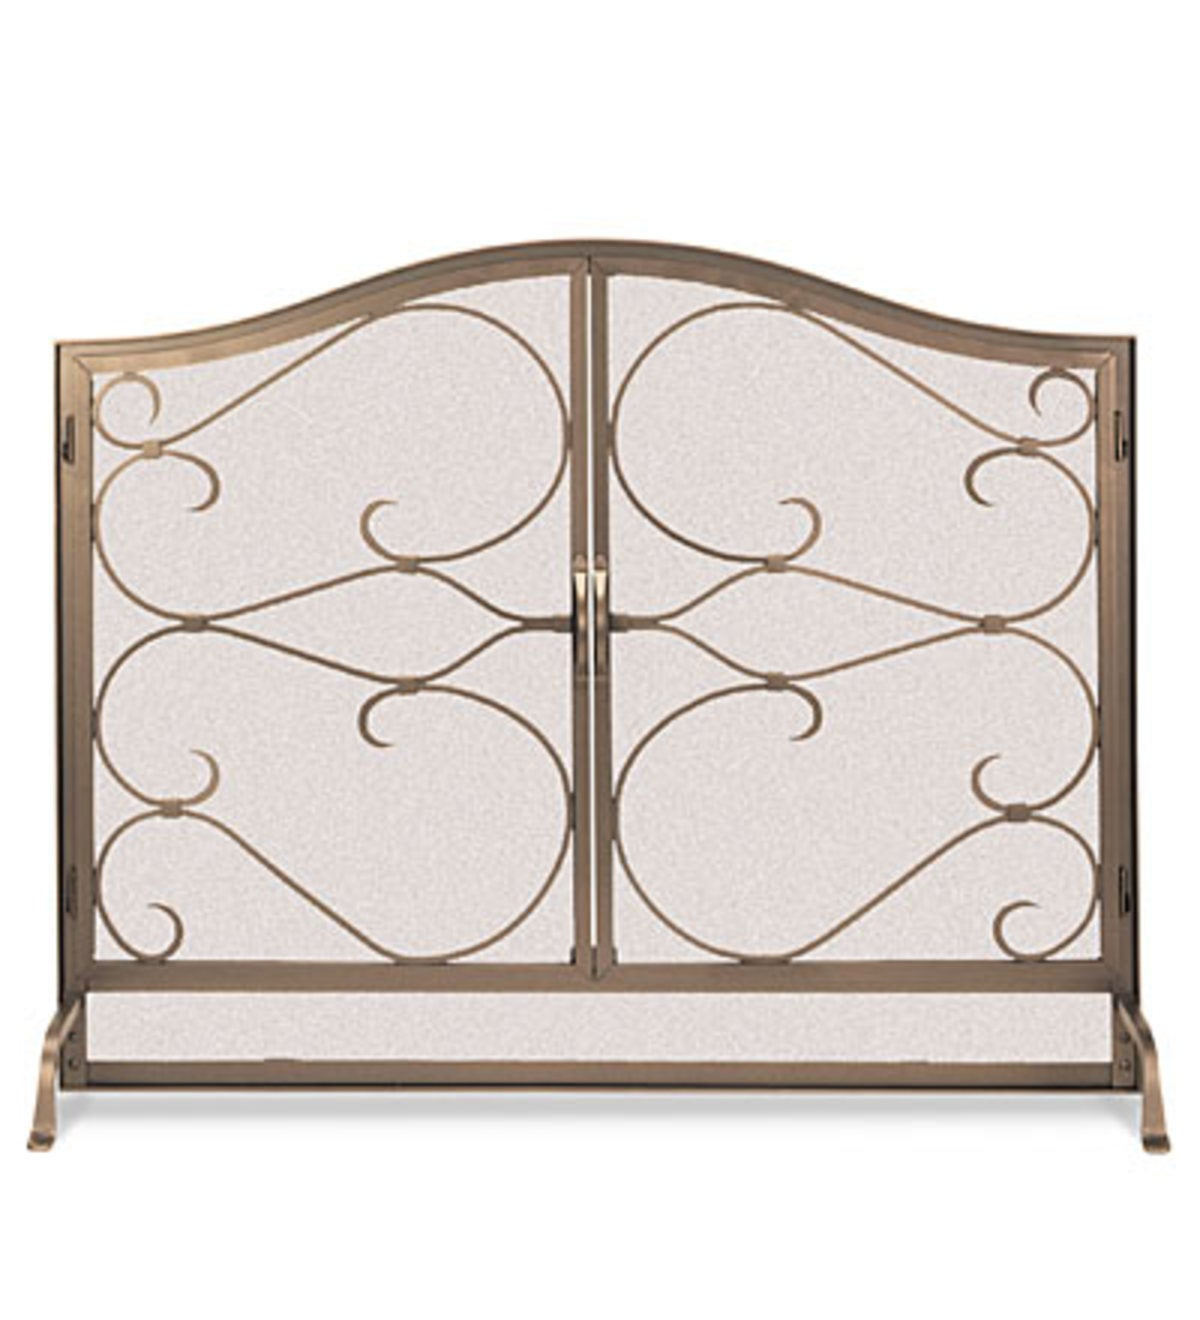 Iron Gate Arched Door Screen